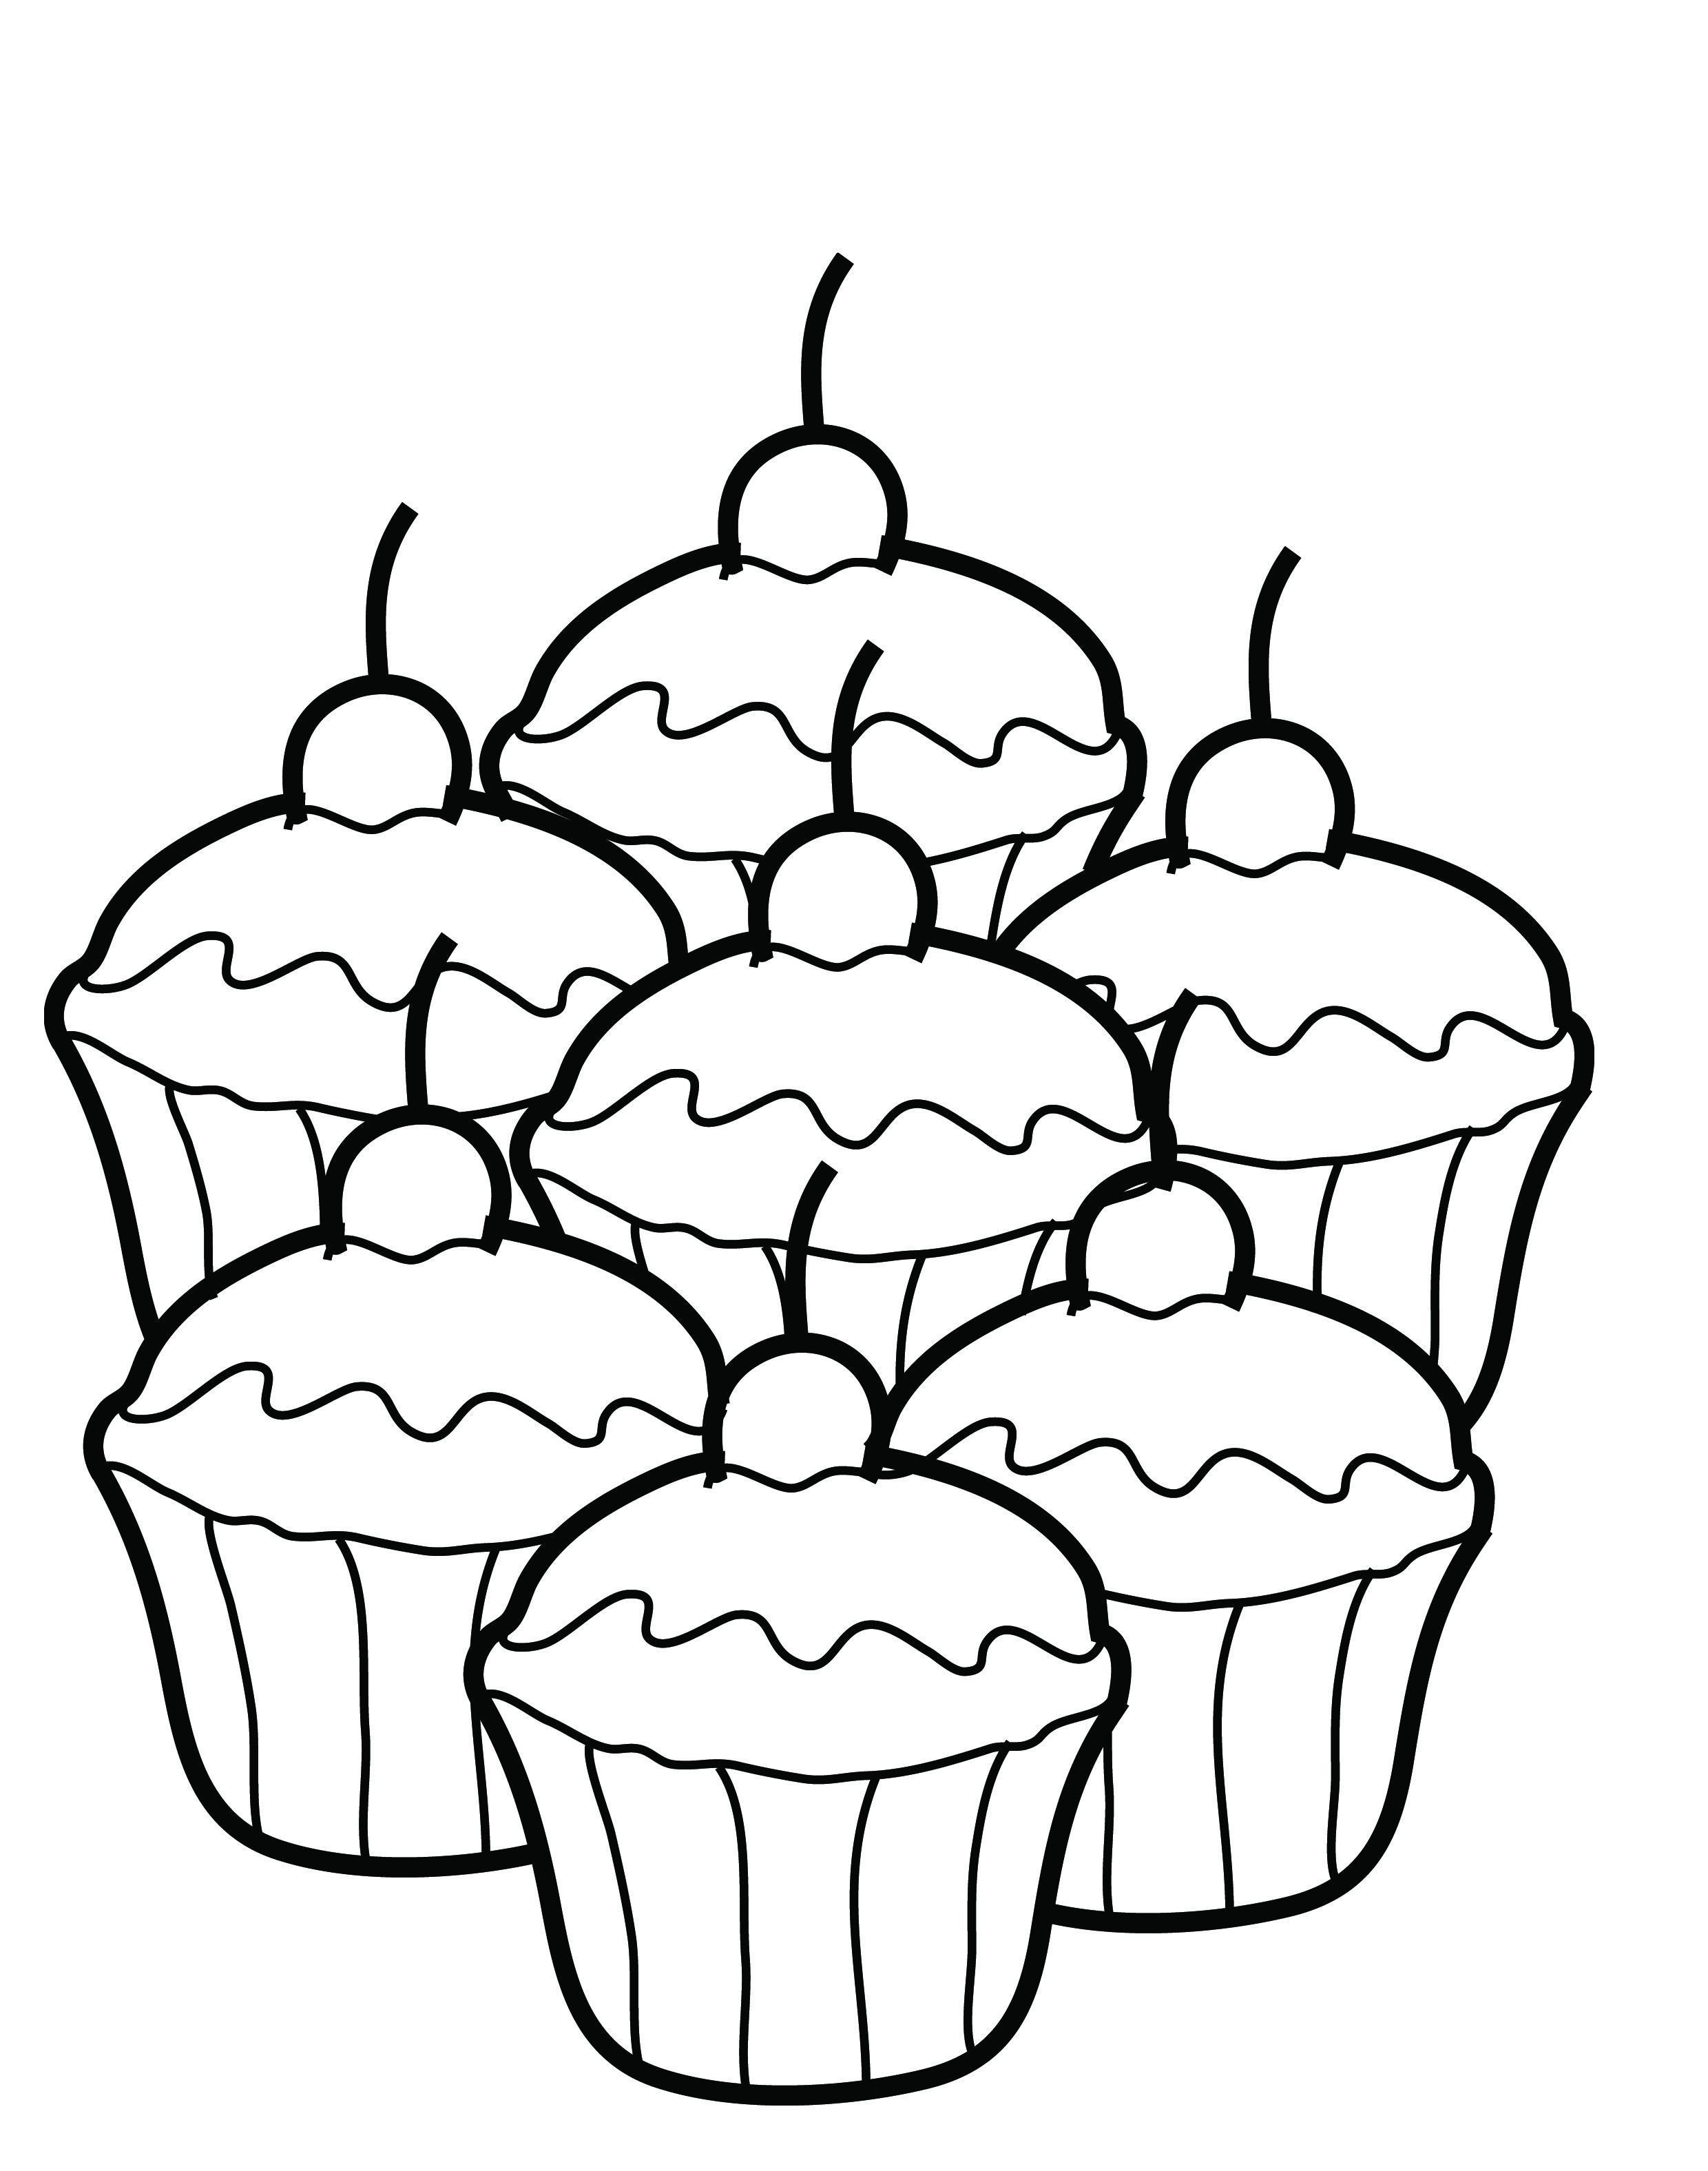 cupcake coloring pages for kids - Pictures To Colour In For Children